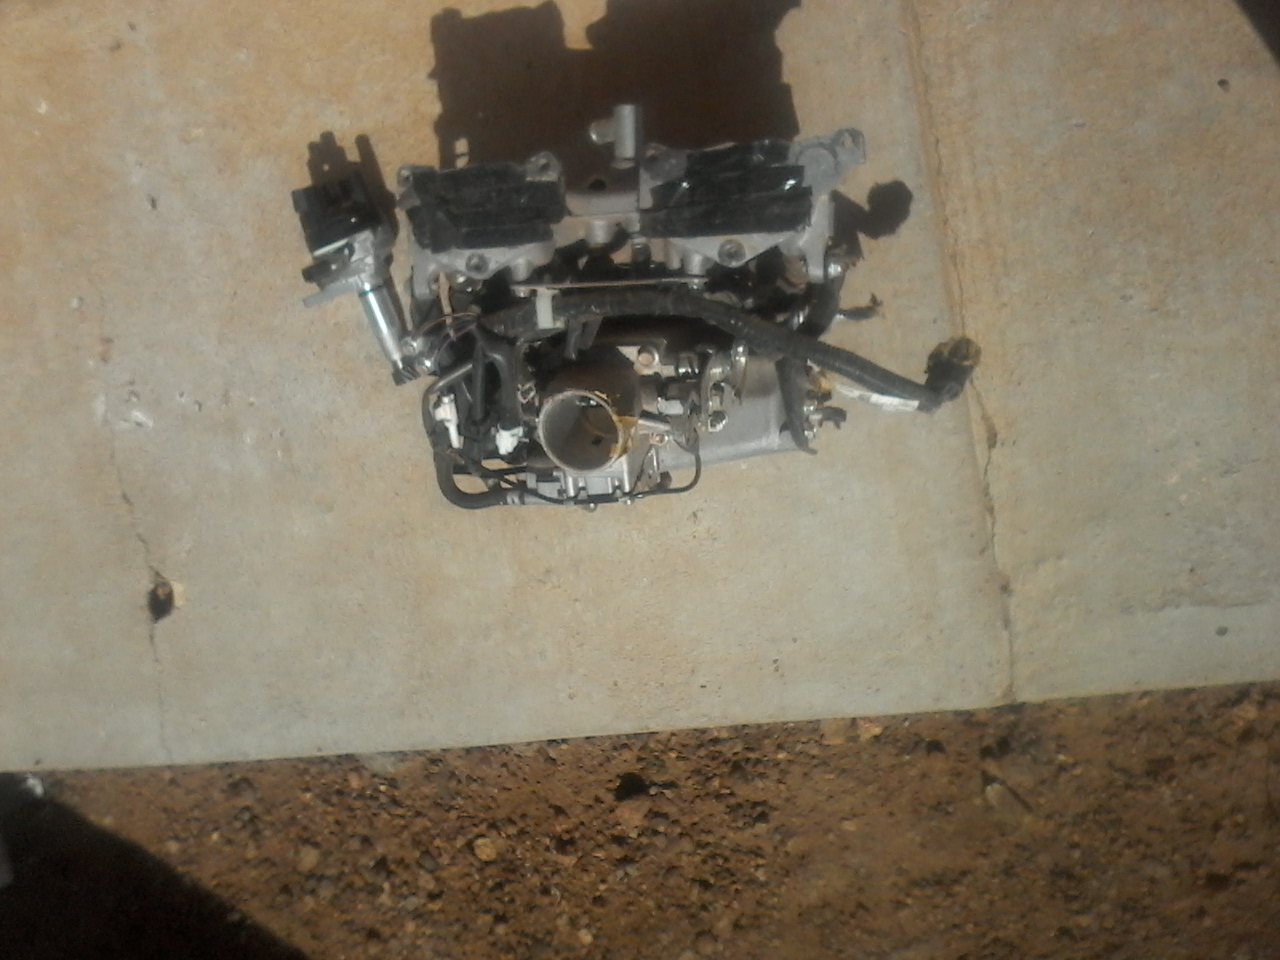 97 Mazda  drifter electronic distributor & manifold + fuel injectors to stop for a smartphone